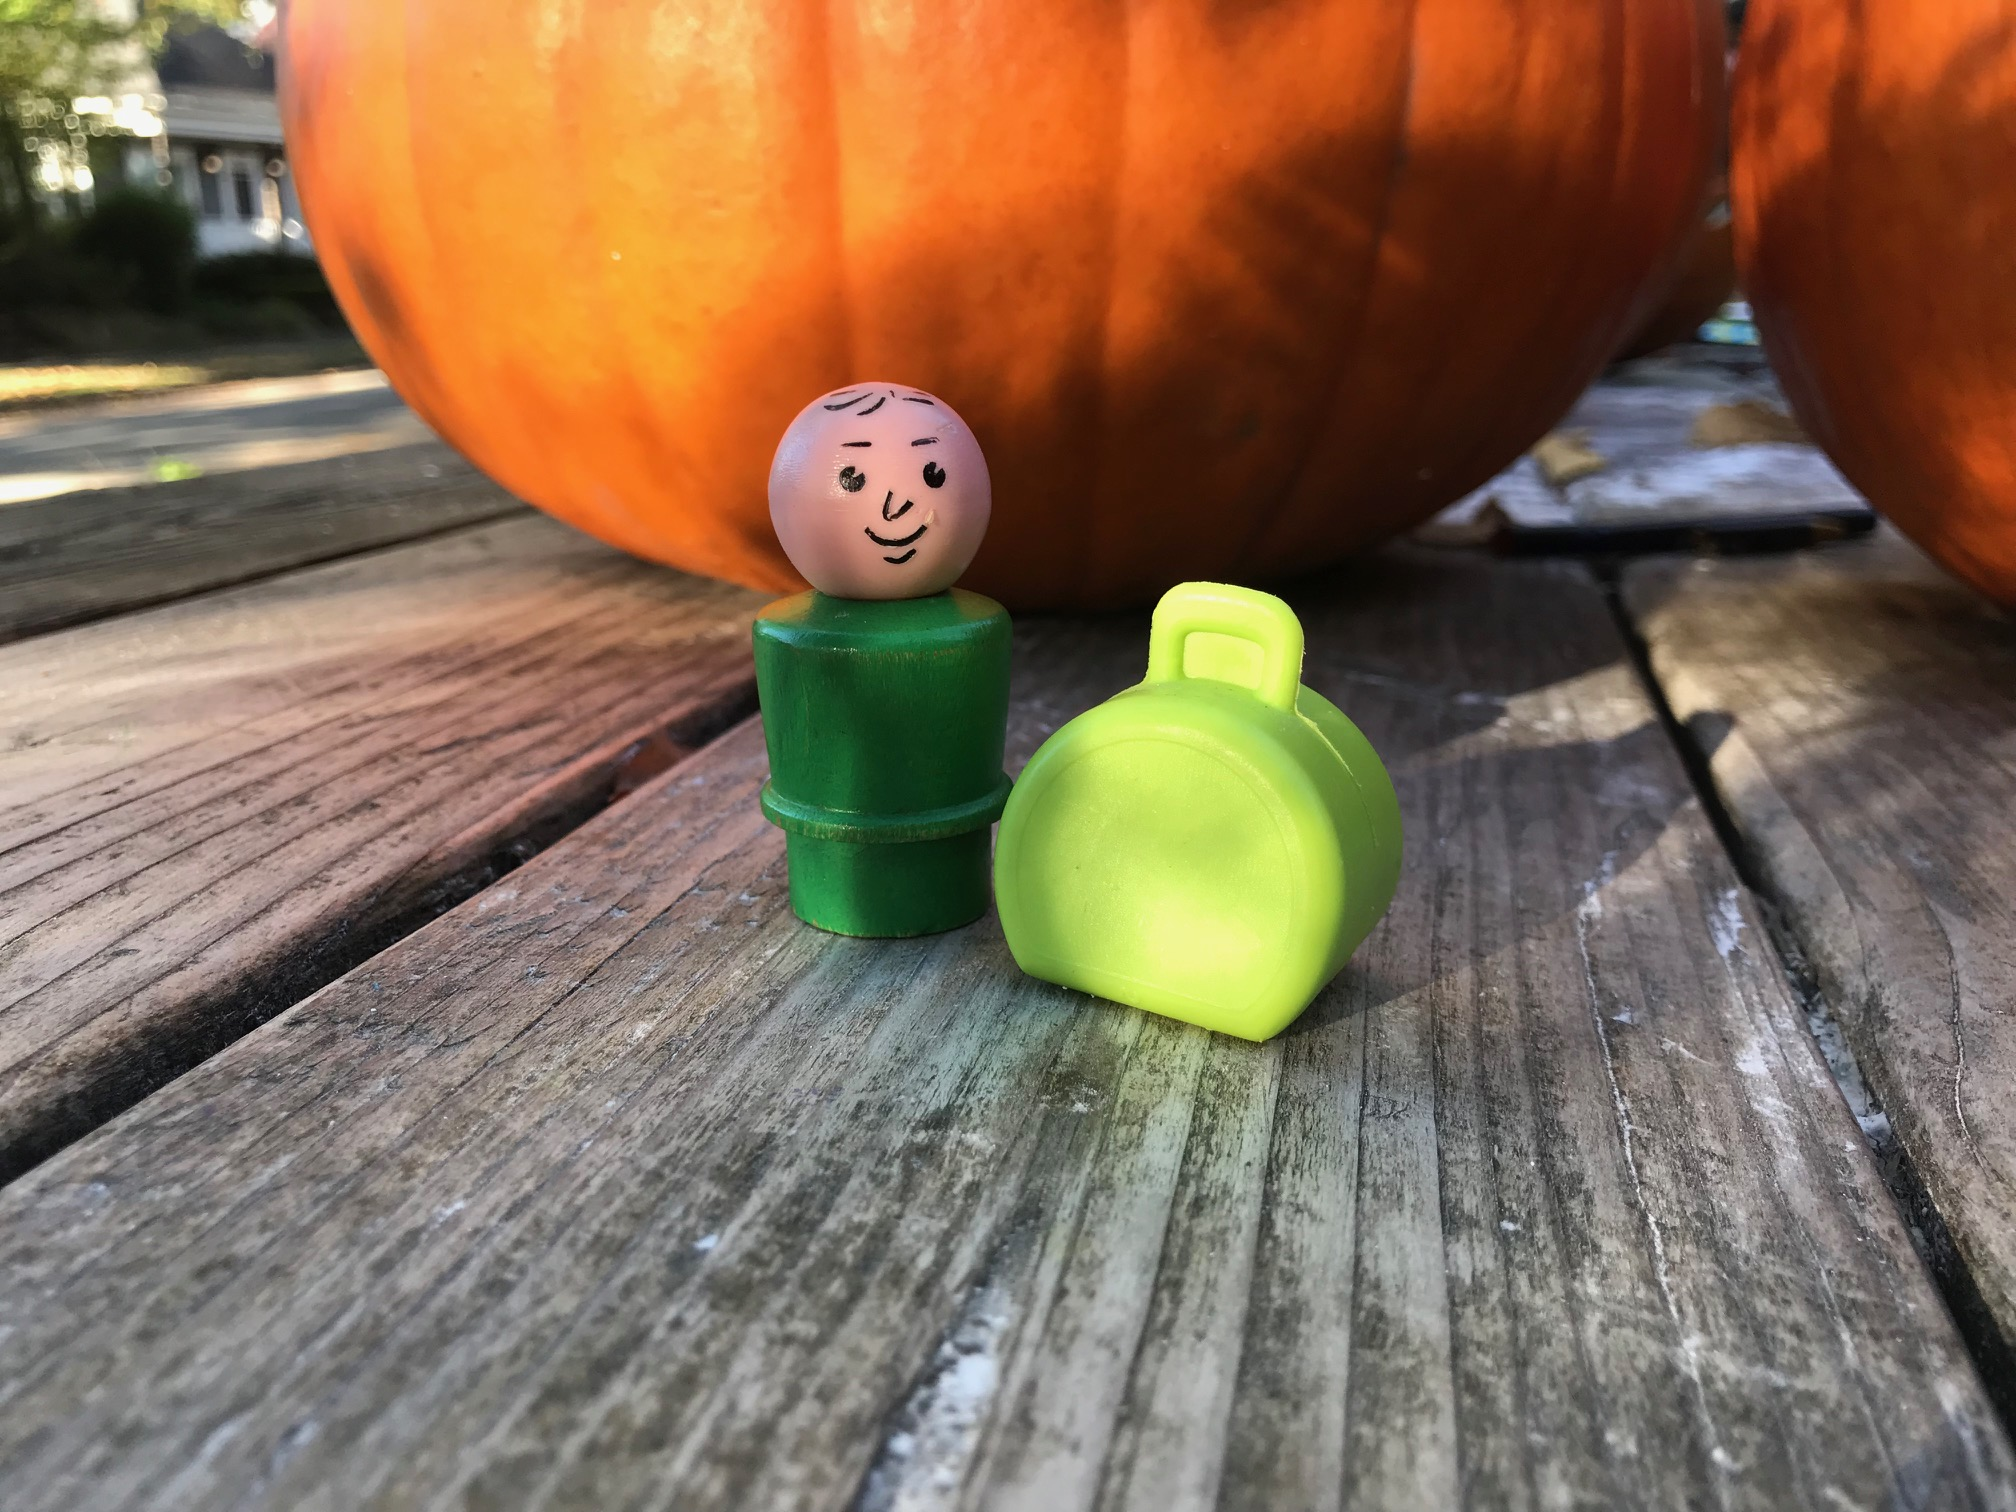 Test Results for Vintage Fisher Price Little People Suitcase Toy